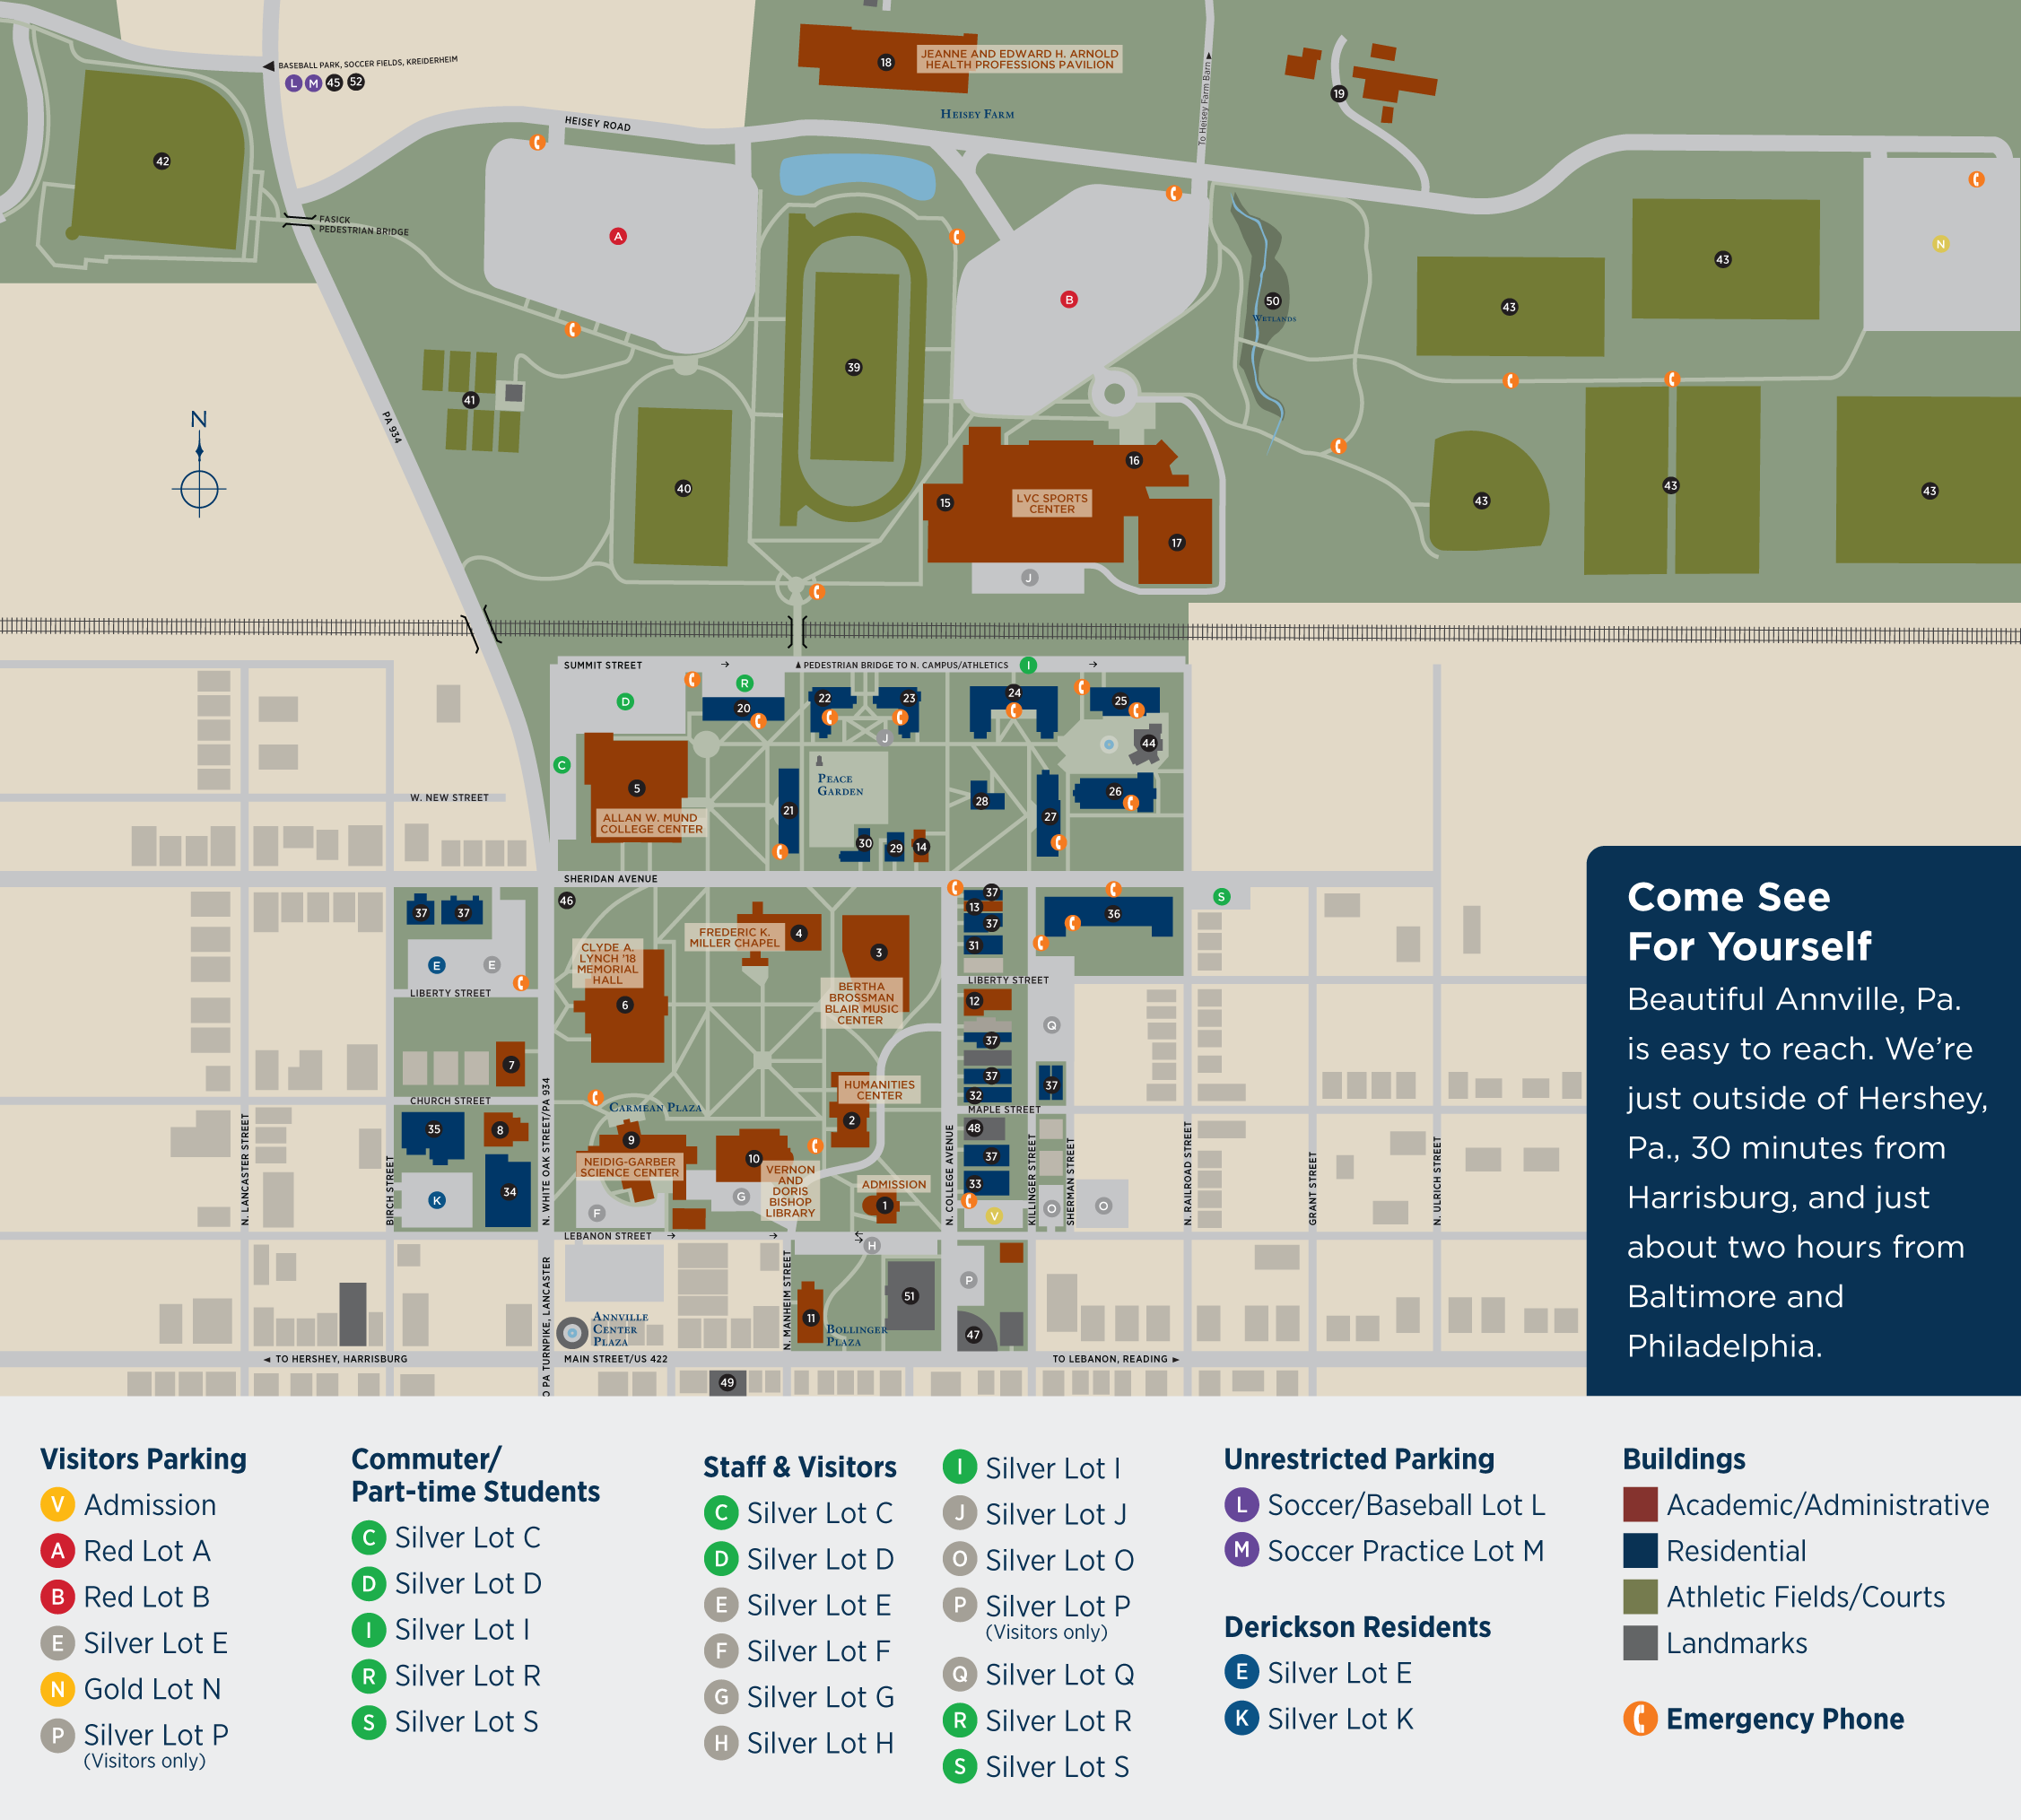 Lebanon Valley College Campus Map.Campus Map Lebanon Valley College